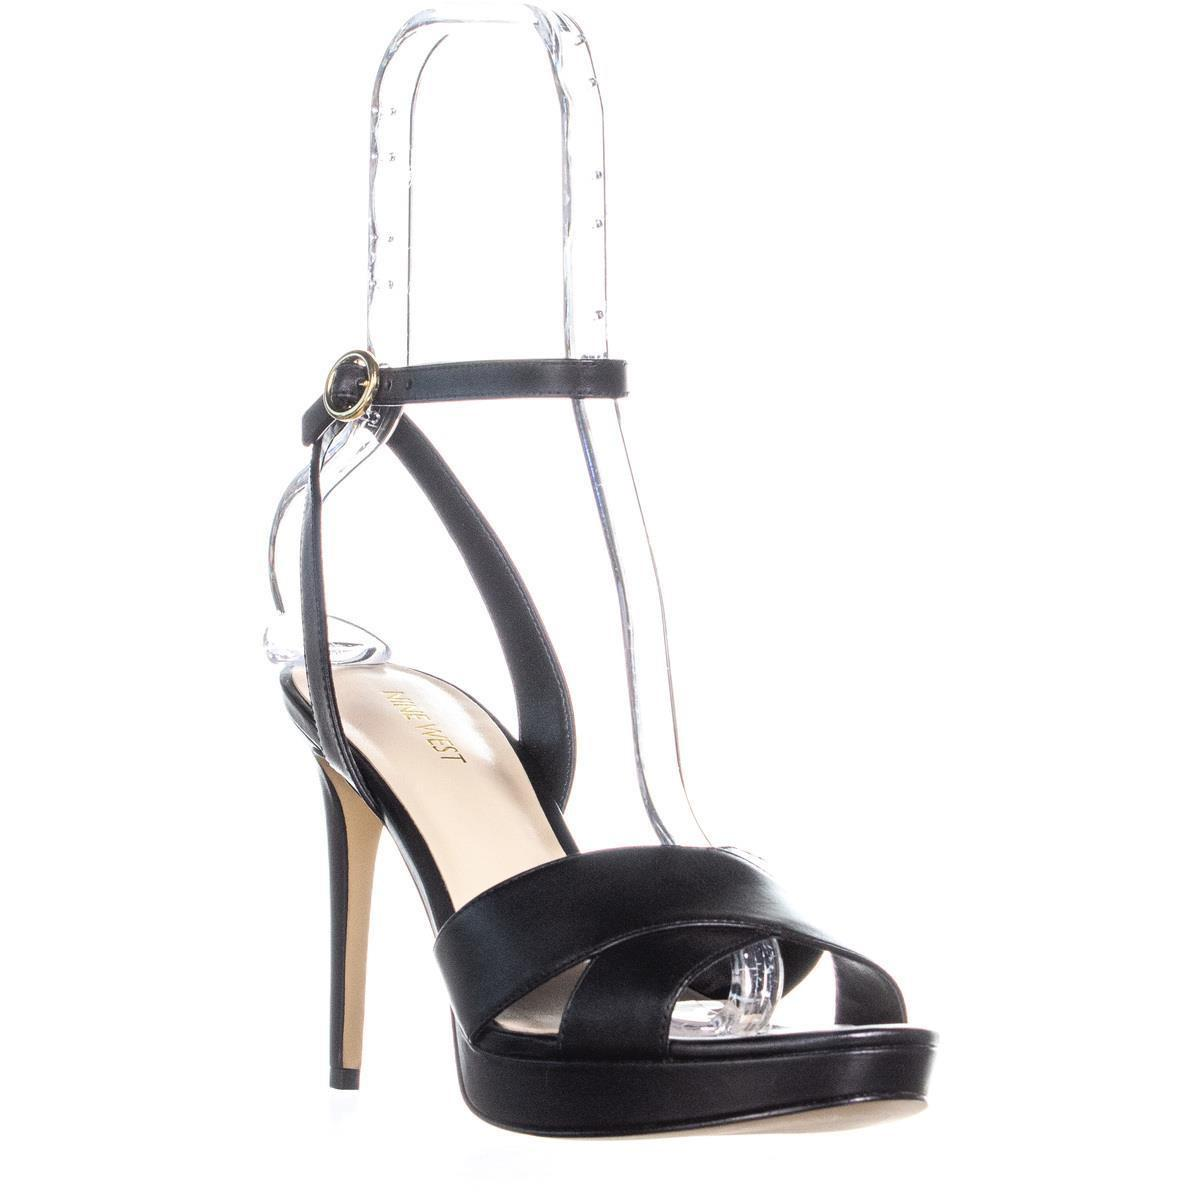 ee1d78b2bba Nine West Quisha Criss Cross Ankle Strap Sandals in Black - Lyst